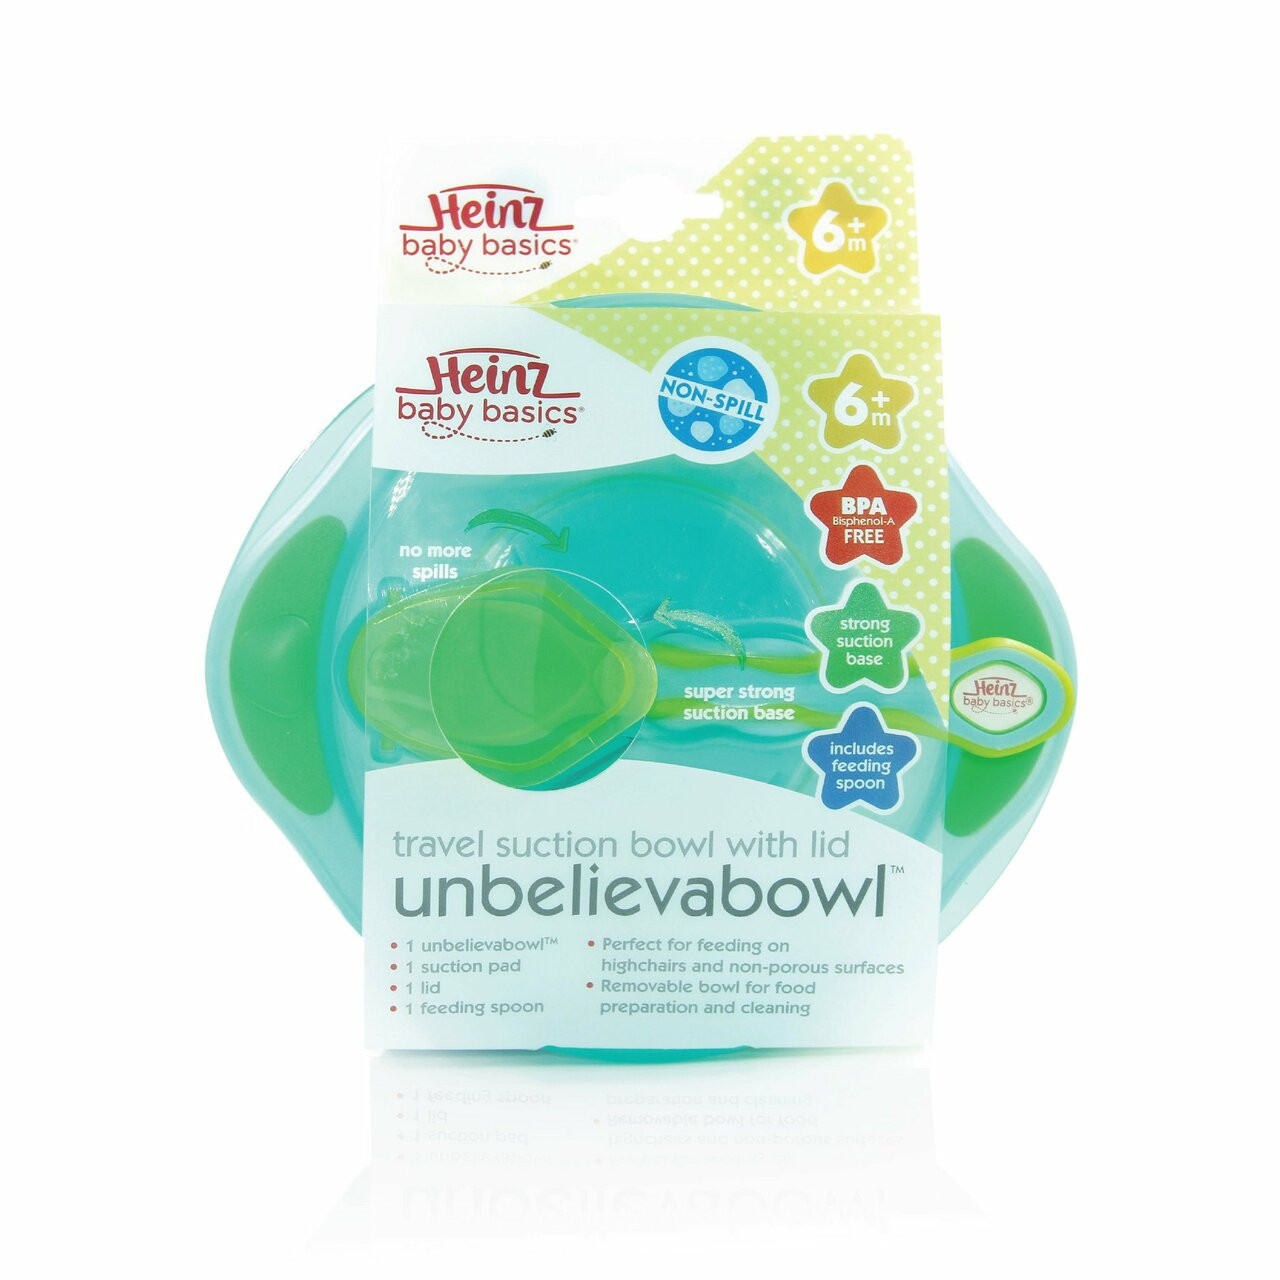 Heinz Baby Basics Unbelievabowl Suction Bowl at Baby Barn Discounts Heinz Baby Basics Unbelieveabowl has been designed to stick to your baby's highchair or you tabletop.